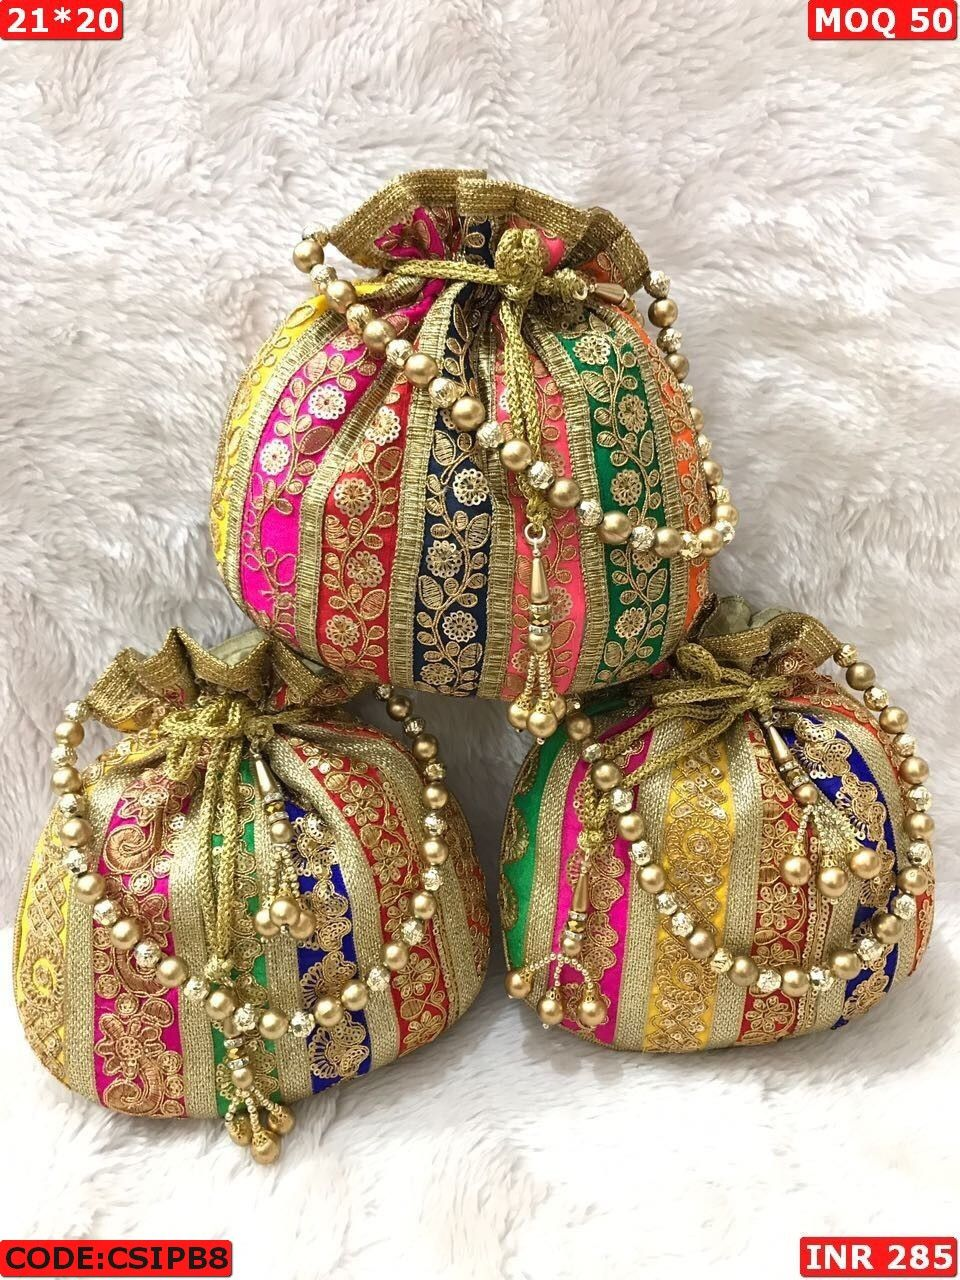 pouch Jewellery Packing Bag Handmade Potli Wholesale Wedding party,gift 20 Pcs